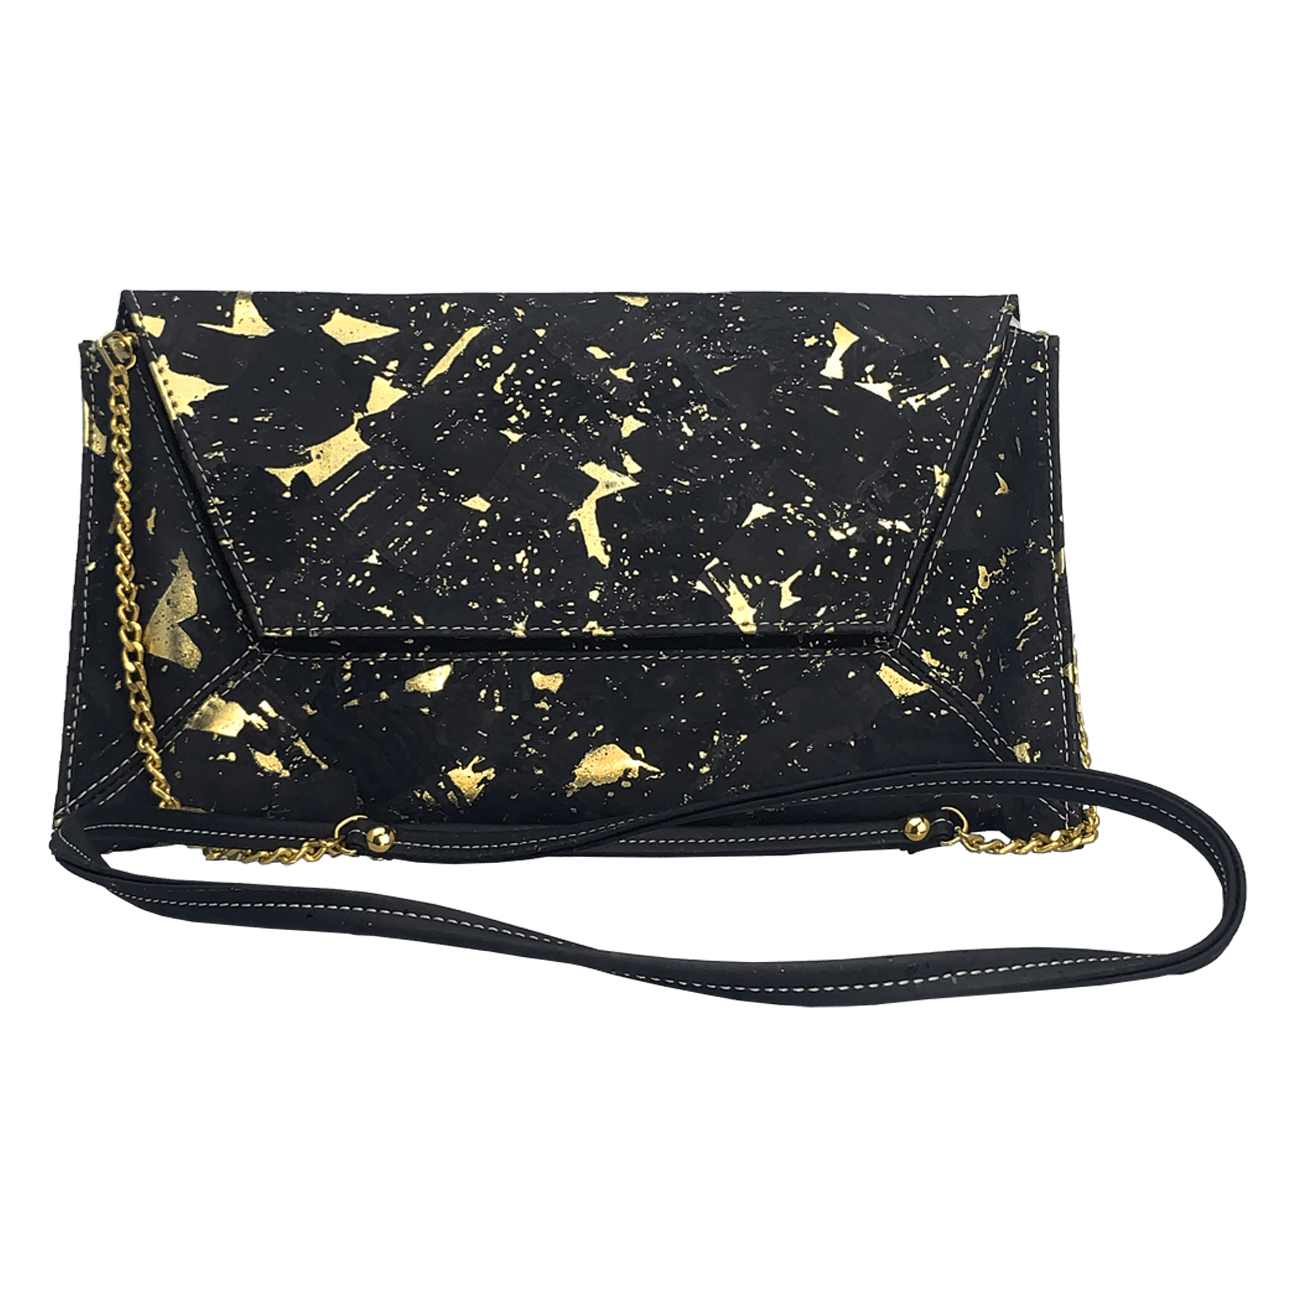 Golden Black Clutch with Chain Strap - Naturally Anti-Microbial Hypoallergenic Sustainable Eco-Friendly Cork